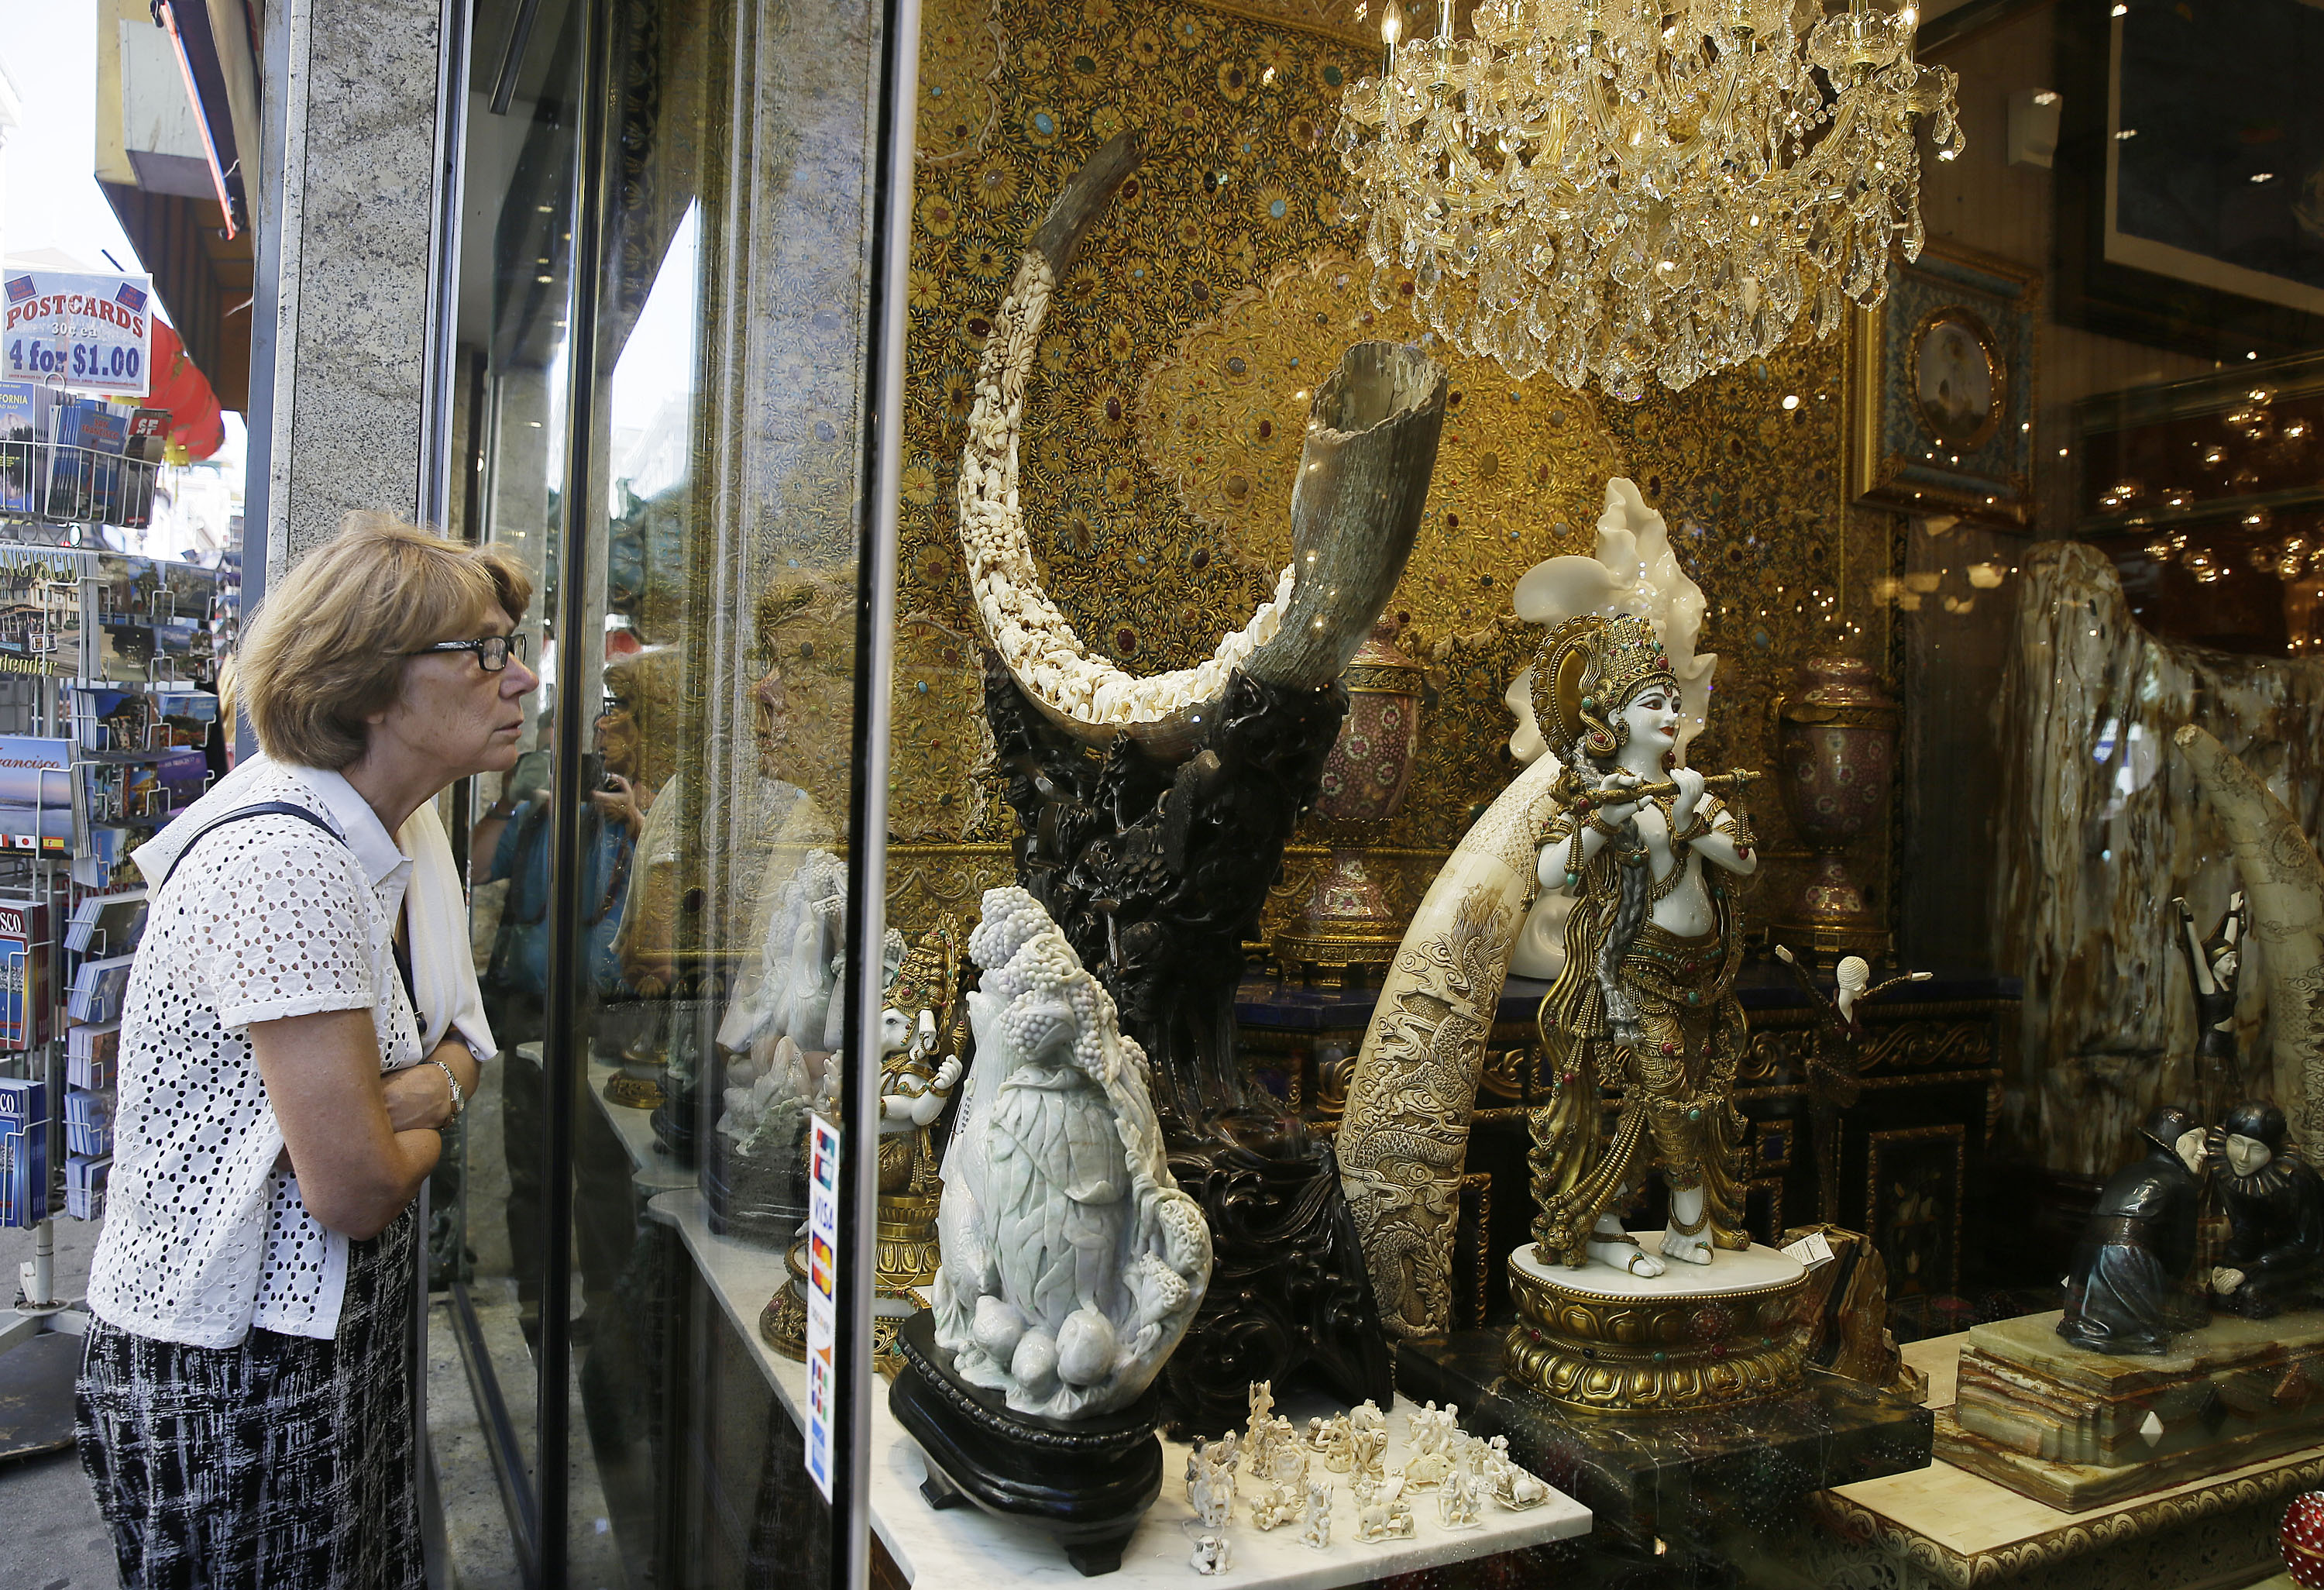 In this Monday, July 27, 2015 photo, Heike Dietrich, of Germany, looks at a mammoth ivory tusk for sale in the window of a Chinatown shop in San Francisco. Merchants of carved ivory tusks and trinkets in San Francisco's Chinatown wonder what impact President Obama's sweeping new order restricting ivory sales will have in California, the country's No. 2 market for elephant ivory. Lawmakers in New York recently closed most loopholes allowing ivory sales, but California lawmakers this summer rejected similar measures. Photo: AP